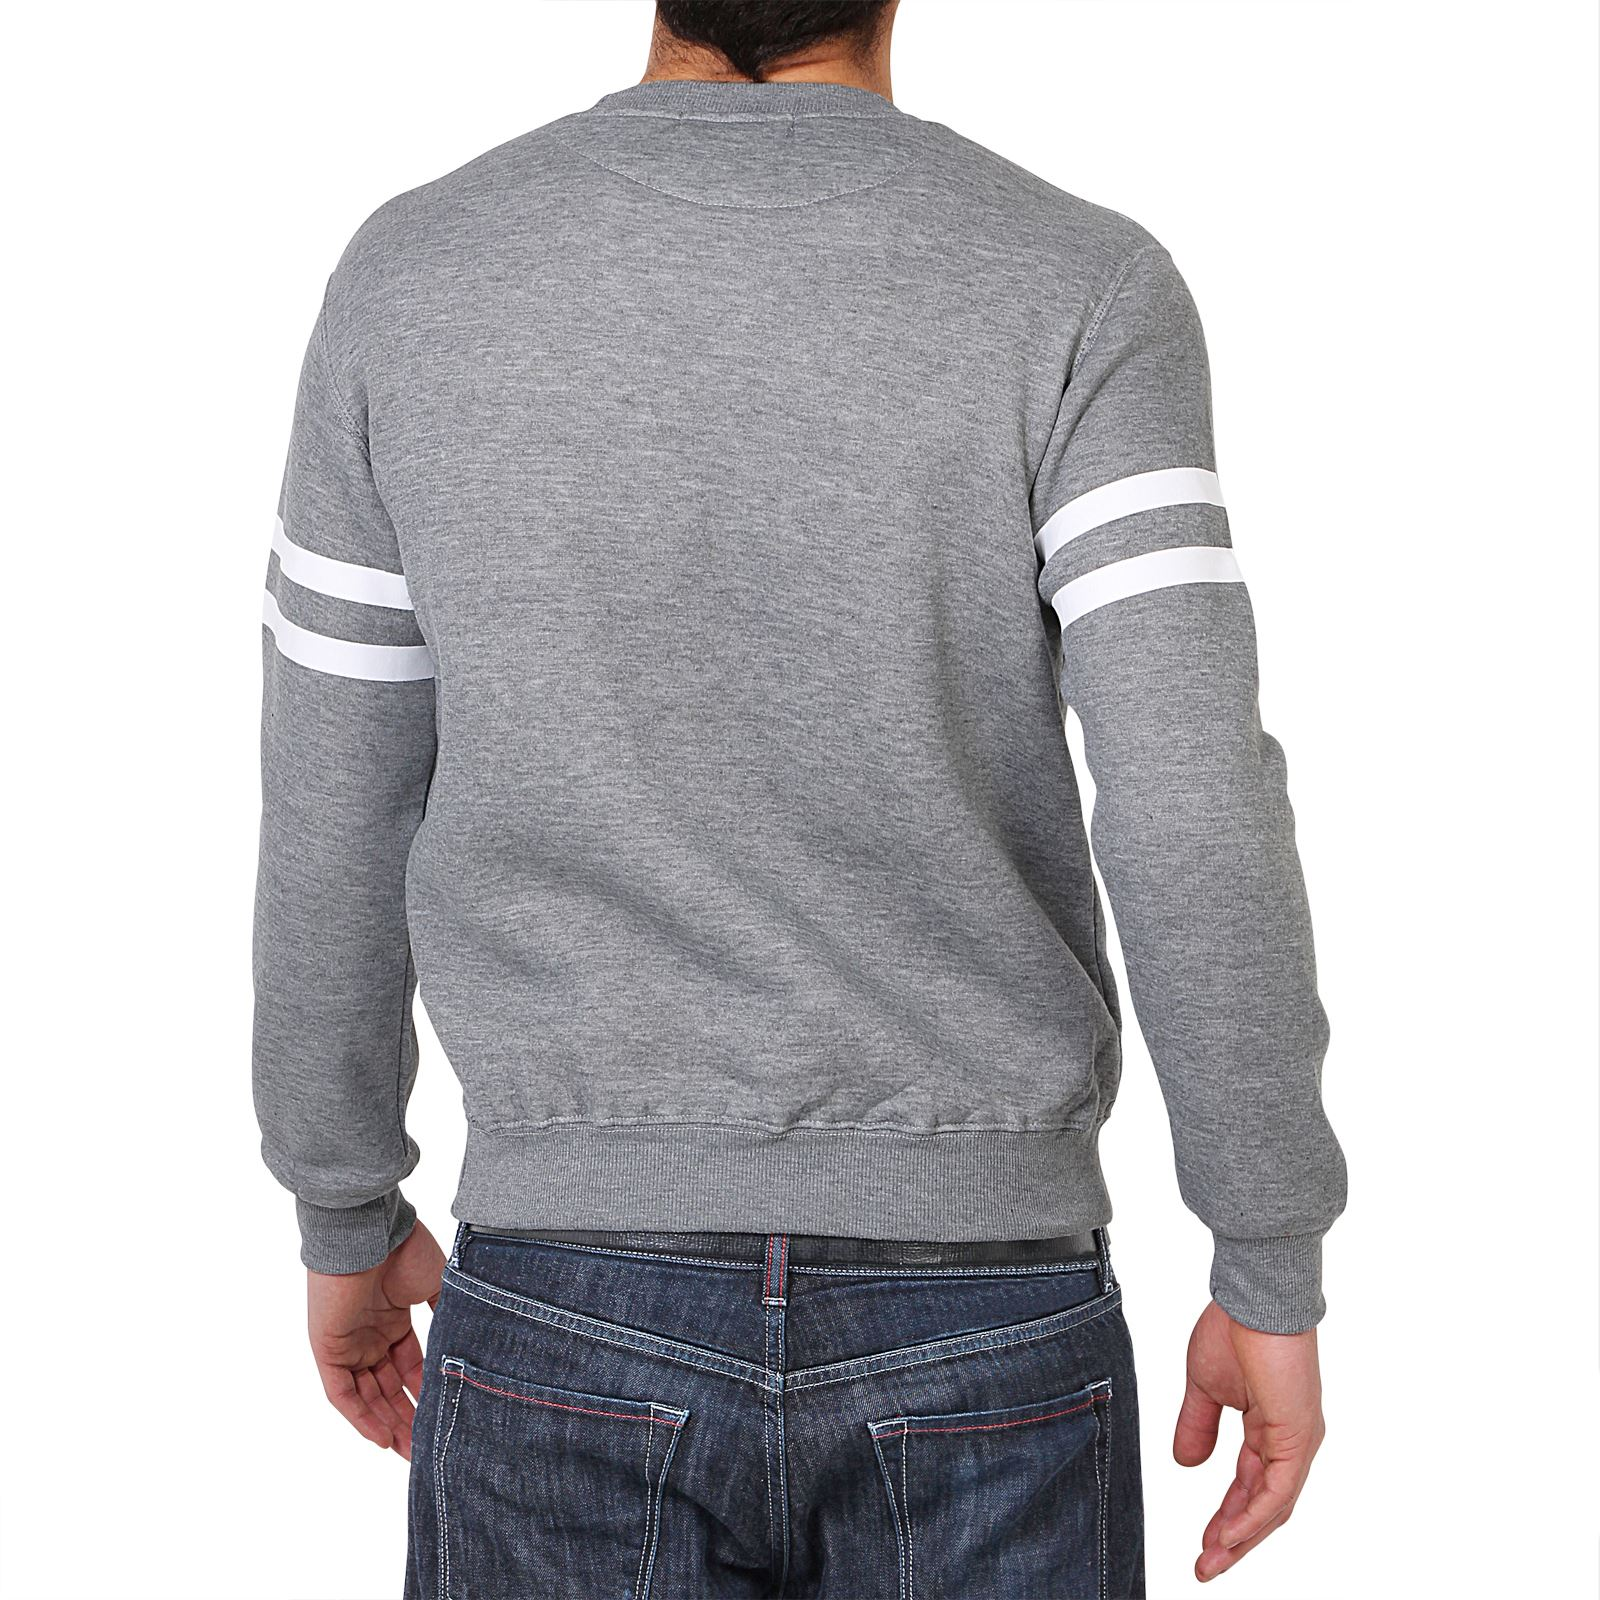 homme sweat shirt pull polaire casual imprim sportif classique ebay. Black Bedroom Furniture Sets. Home Design Ideas